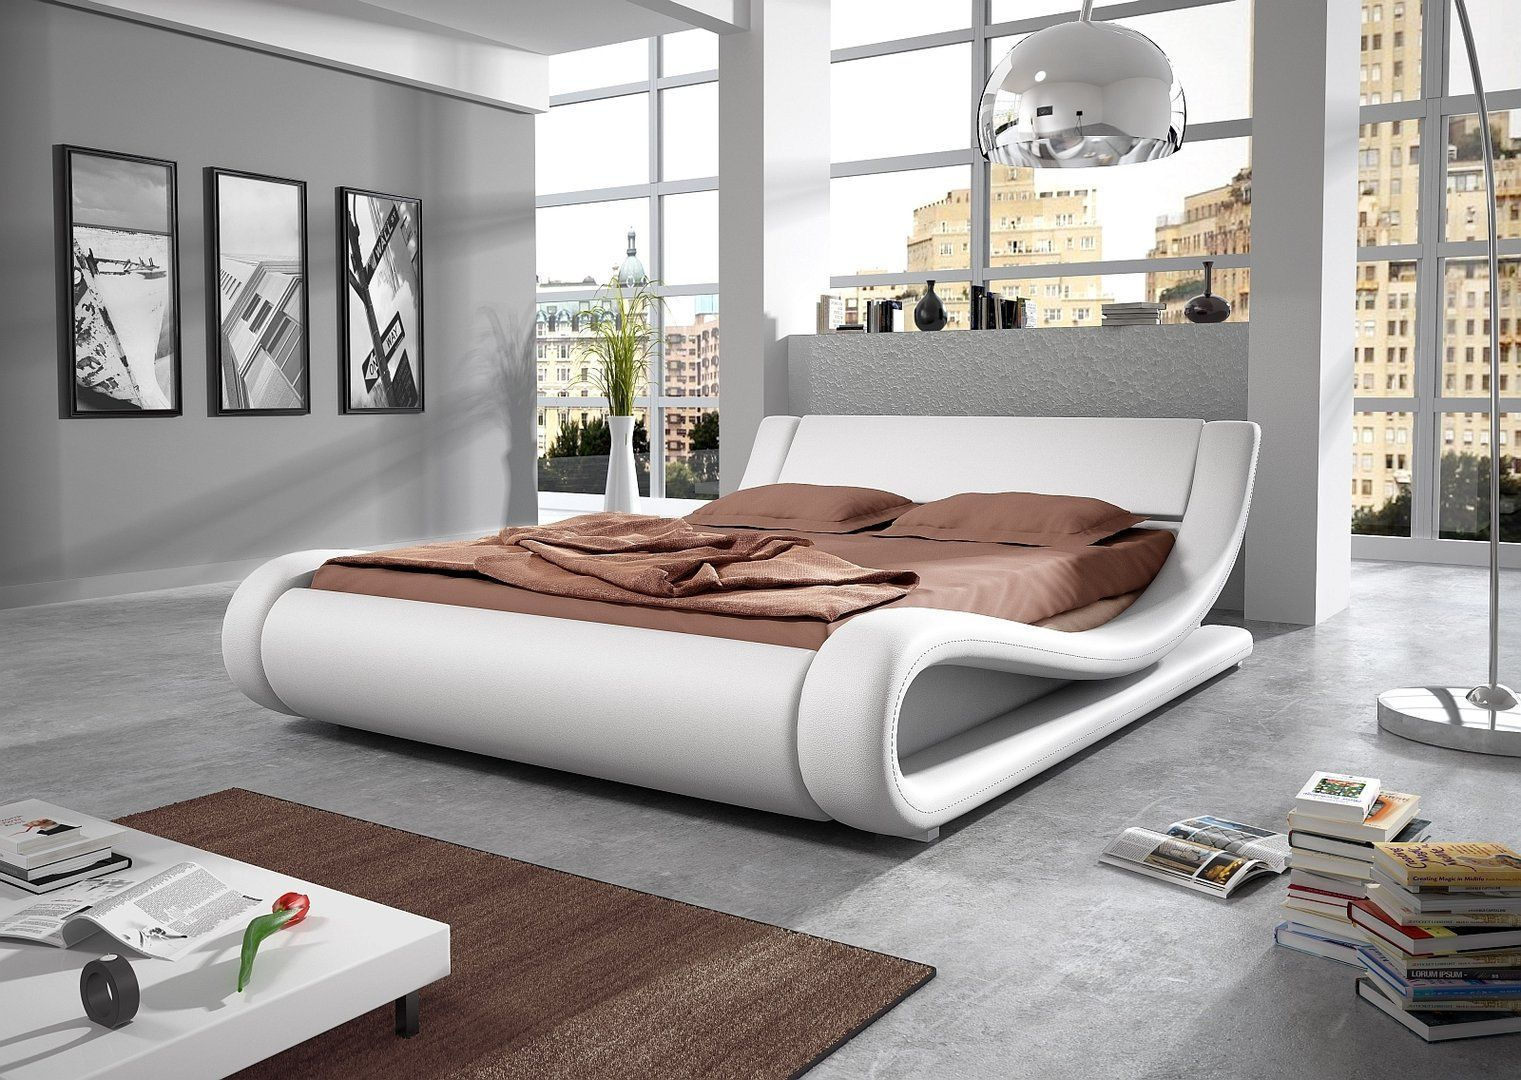 How To Choose Pictures For Bedroom Unique Bedroom Furniture Unique Bed Design Unique Bedroom Design